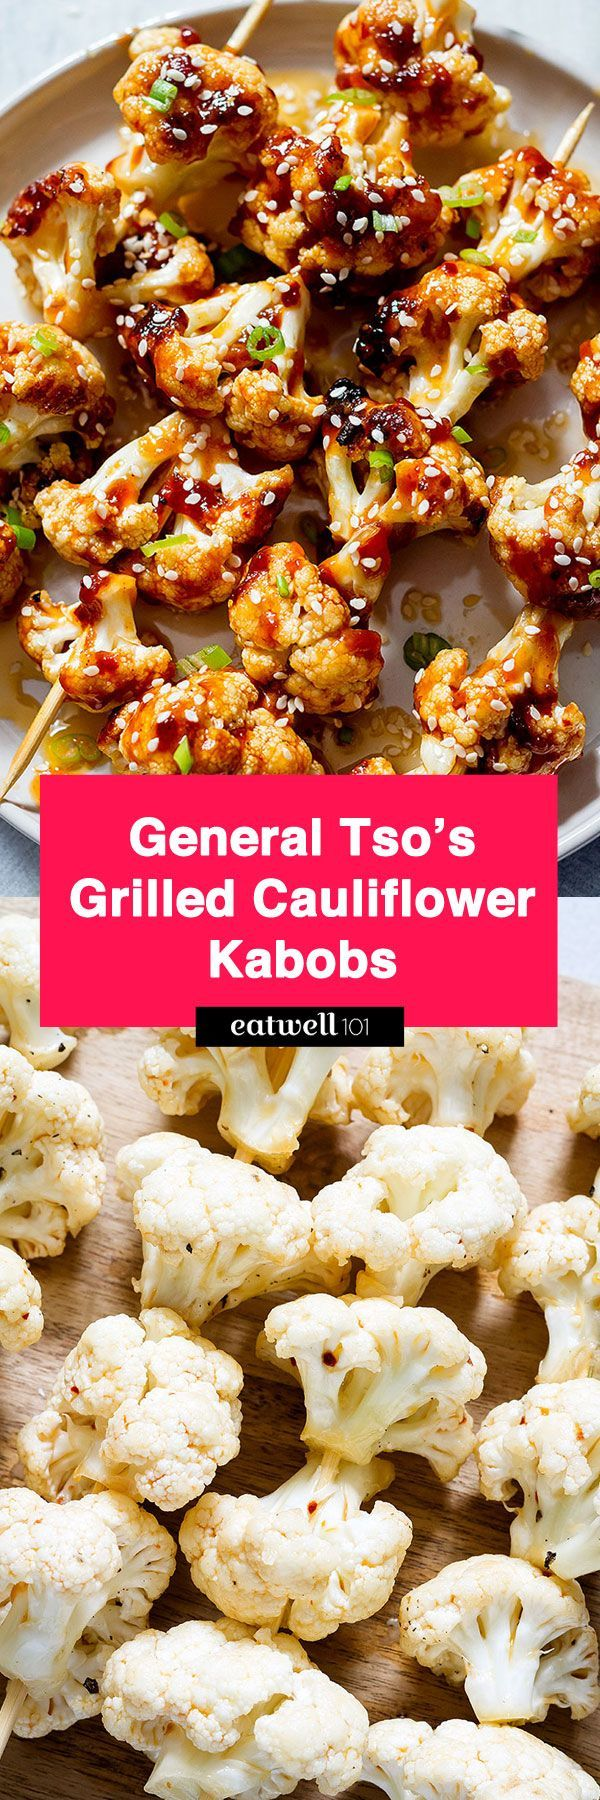 A crunchy-sweet twist on a take-out favorite. These General Tso's Grilled Cauliflower Kabobs areon the healthier side and is pretty appropriate for a vegan hors d'oeuvre or snack. Caul…